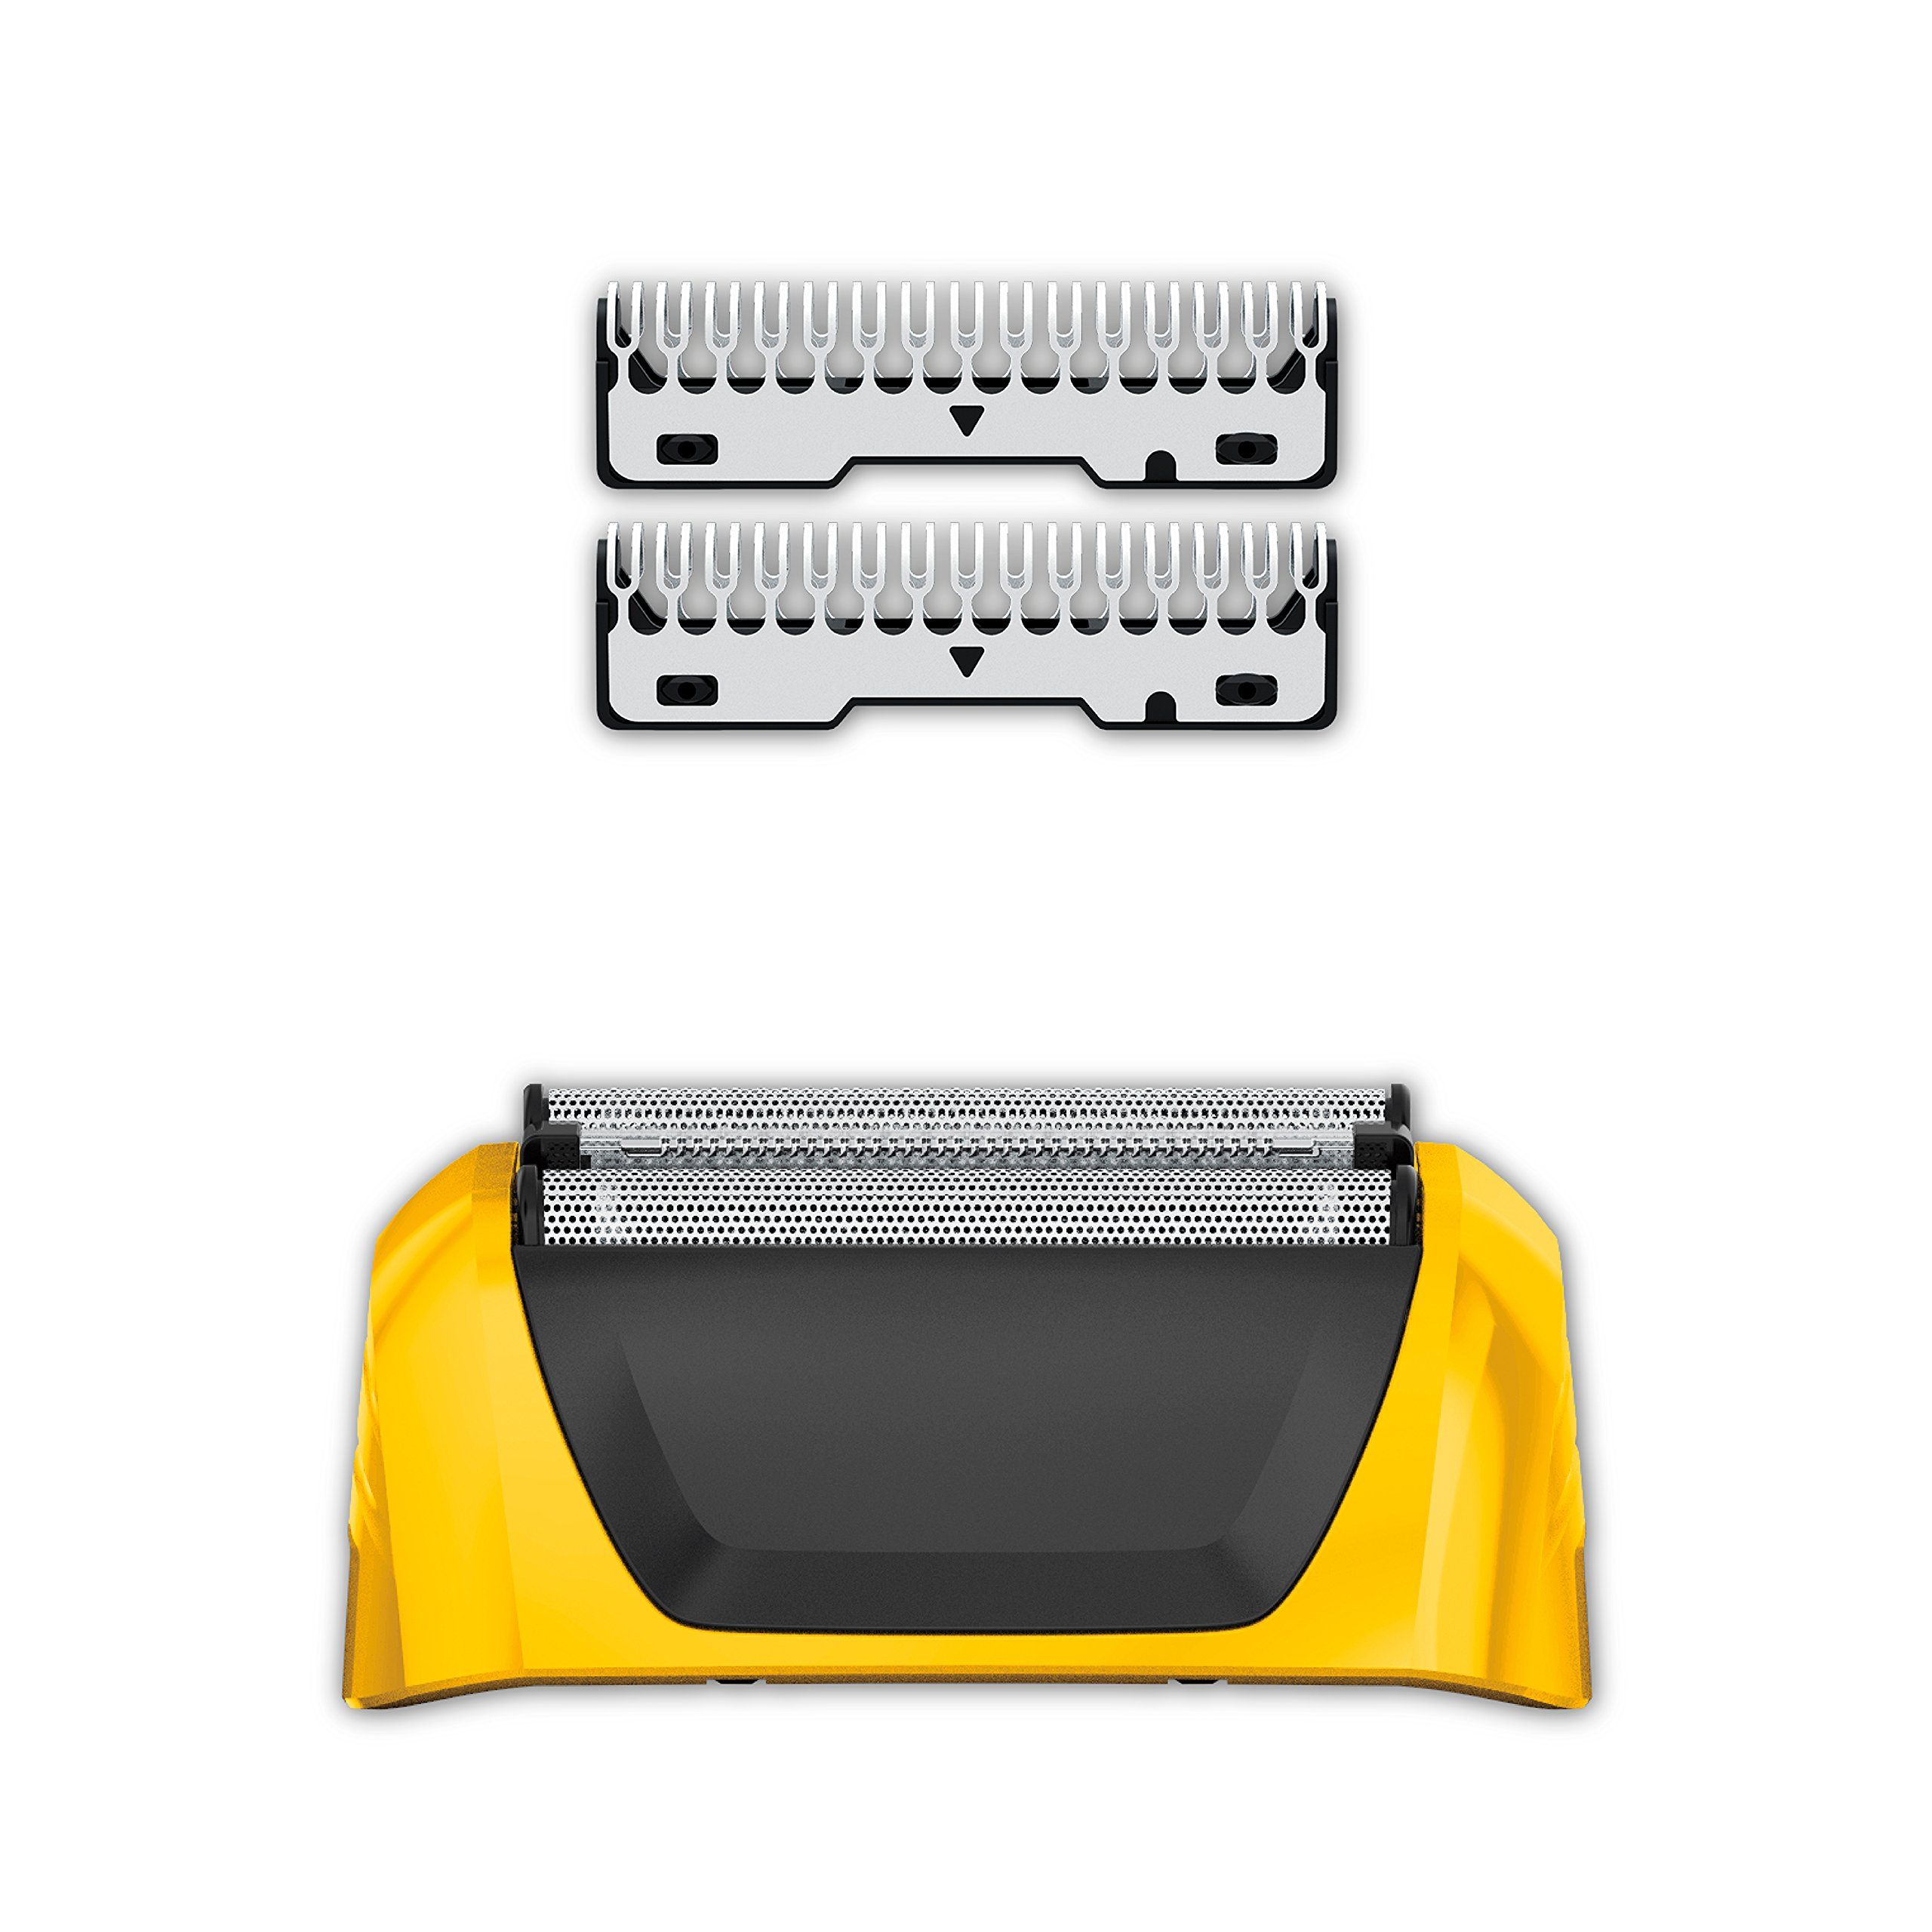 Wahl Yellow Lifeproof Shaver Replacement Foils, Cutters and Head for 7061 Series, 7045-100